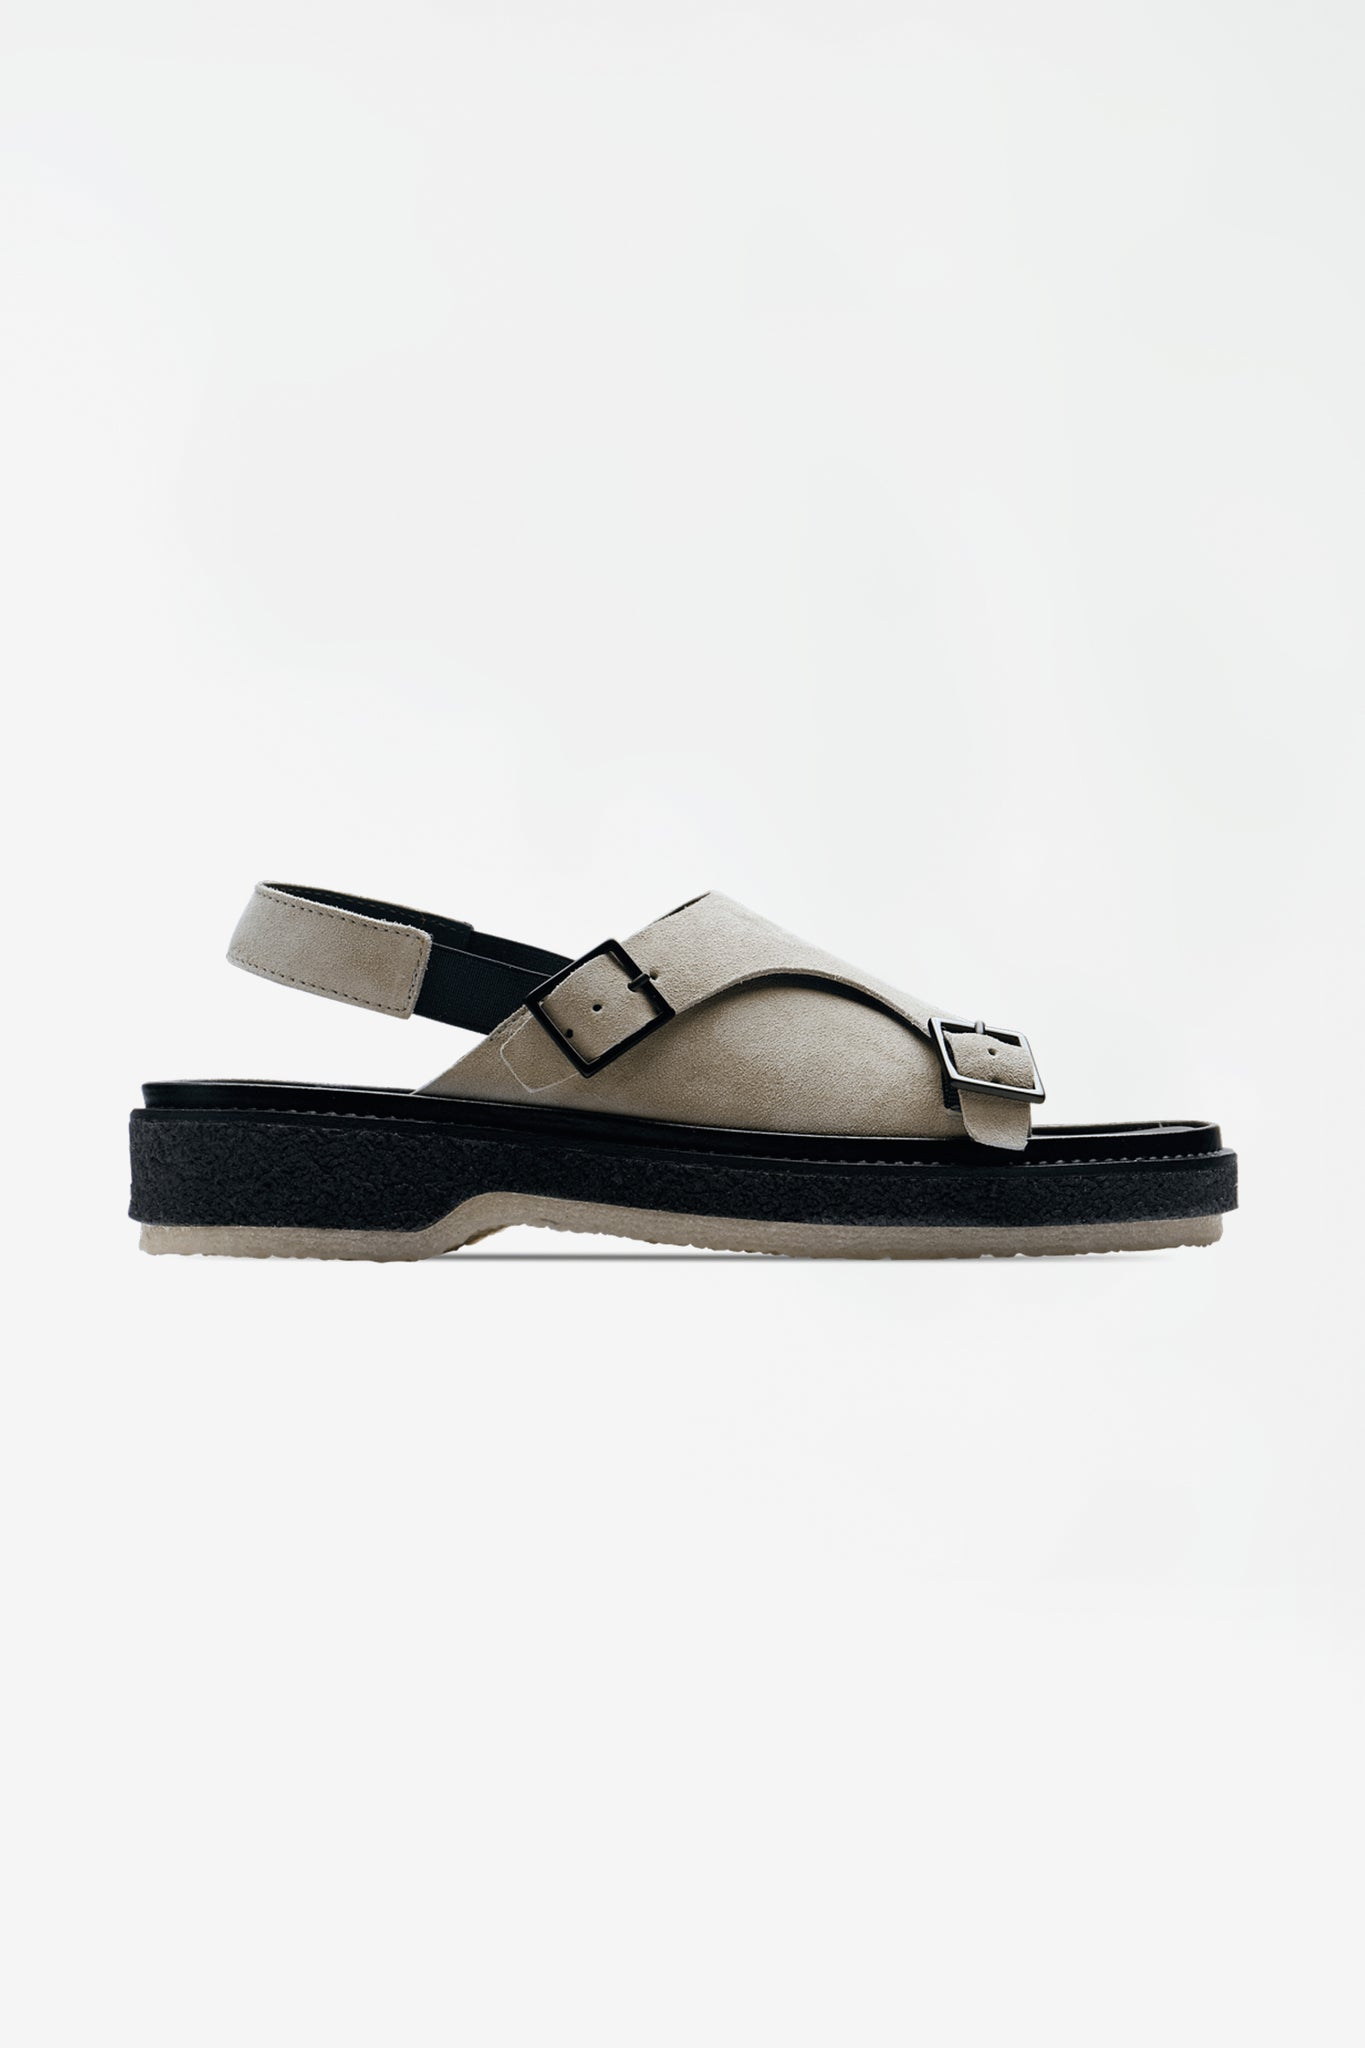 Type 140 suede calf grey sandals